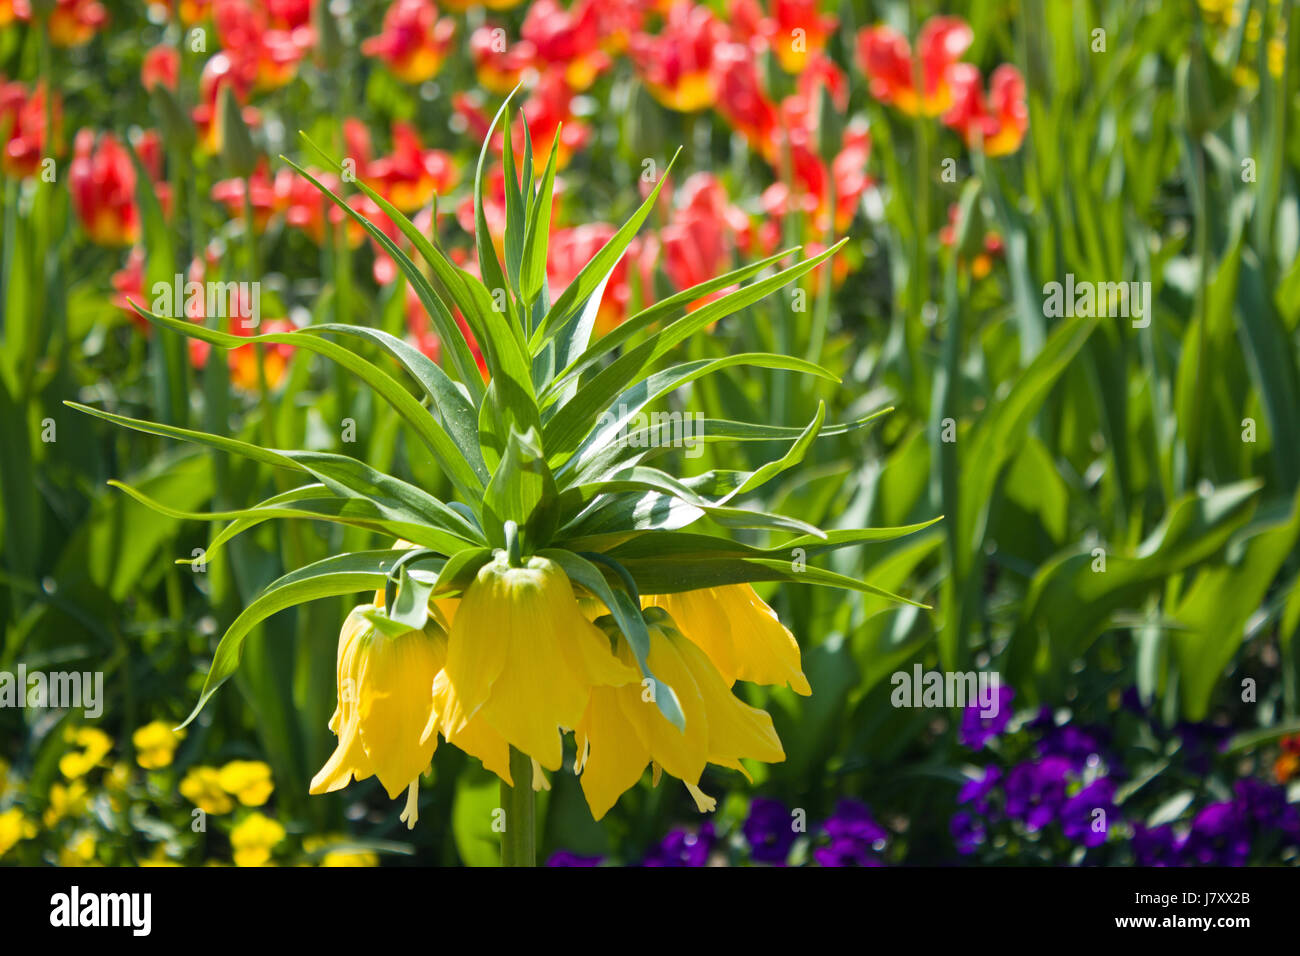 flower plant spring page sheet yellow glass chalice tumbler garden flower plant Stock Photo